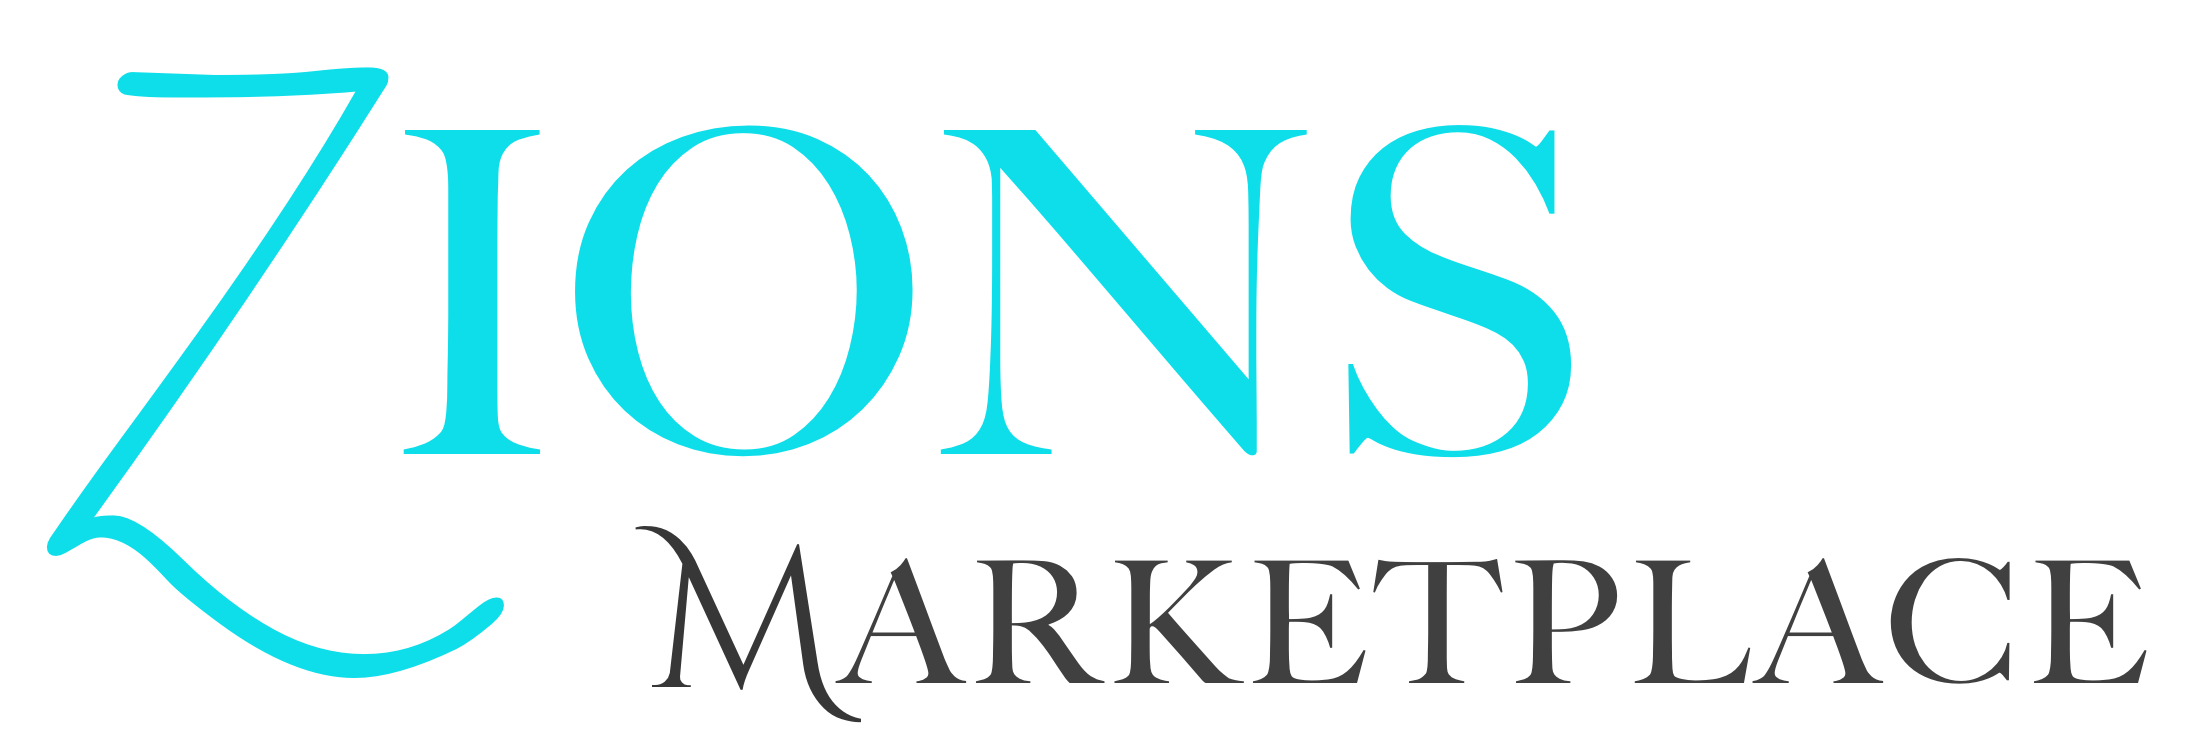 Zions Marketplace | Shop for Jewelry, Art, Gifts, Clothing and More